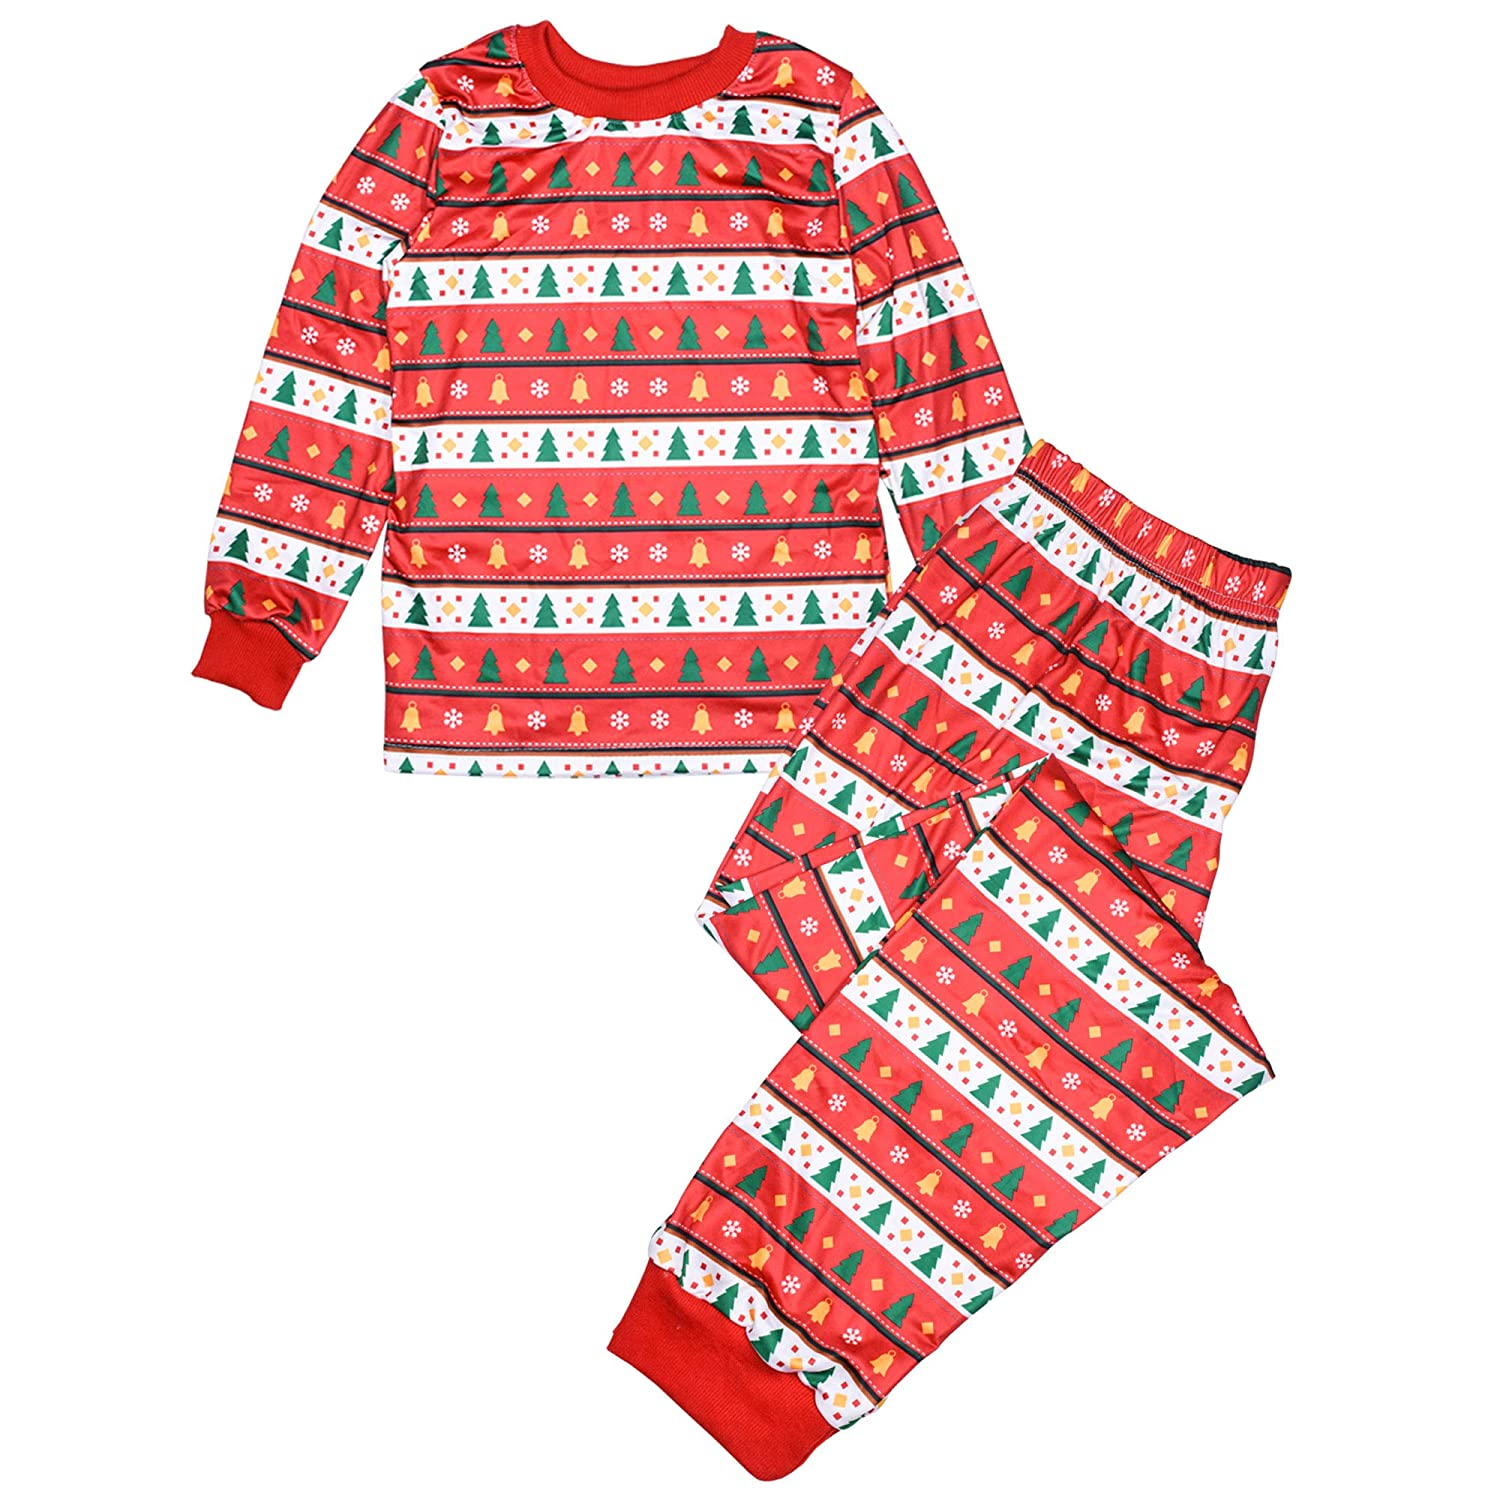 BOZEVON 2 Pieces Family Christmas Tree Pajamas - Father Mother Kids Xmas Sleepwear Nightwear Pajamas PJs Set